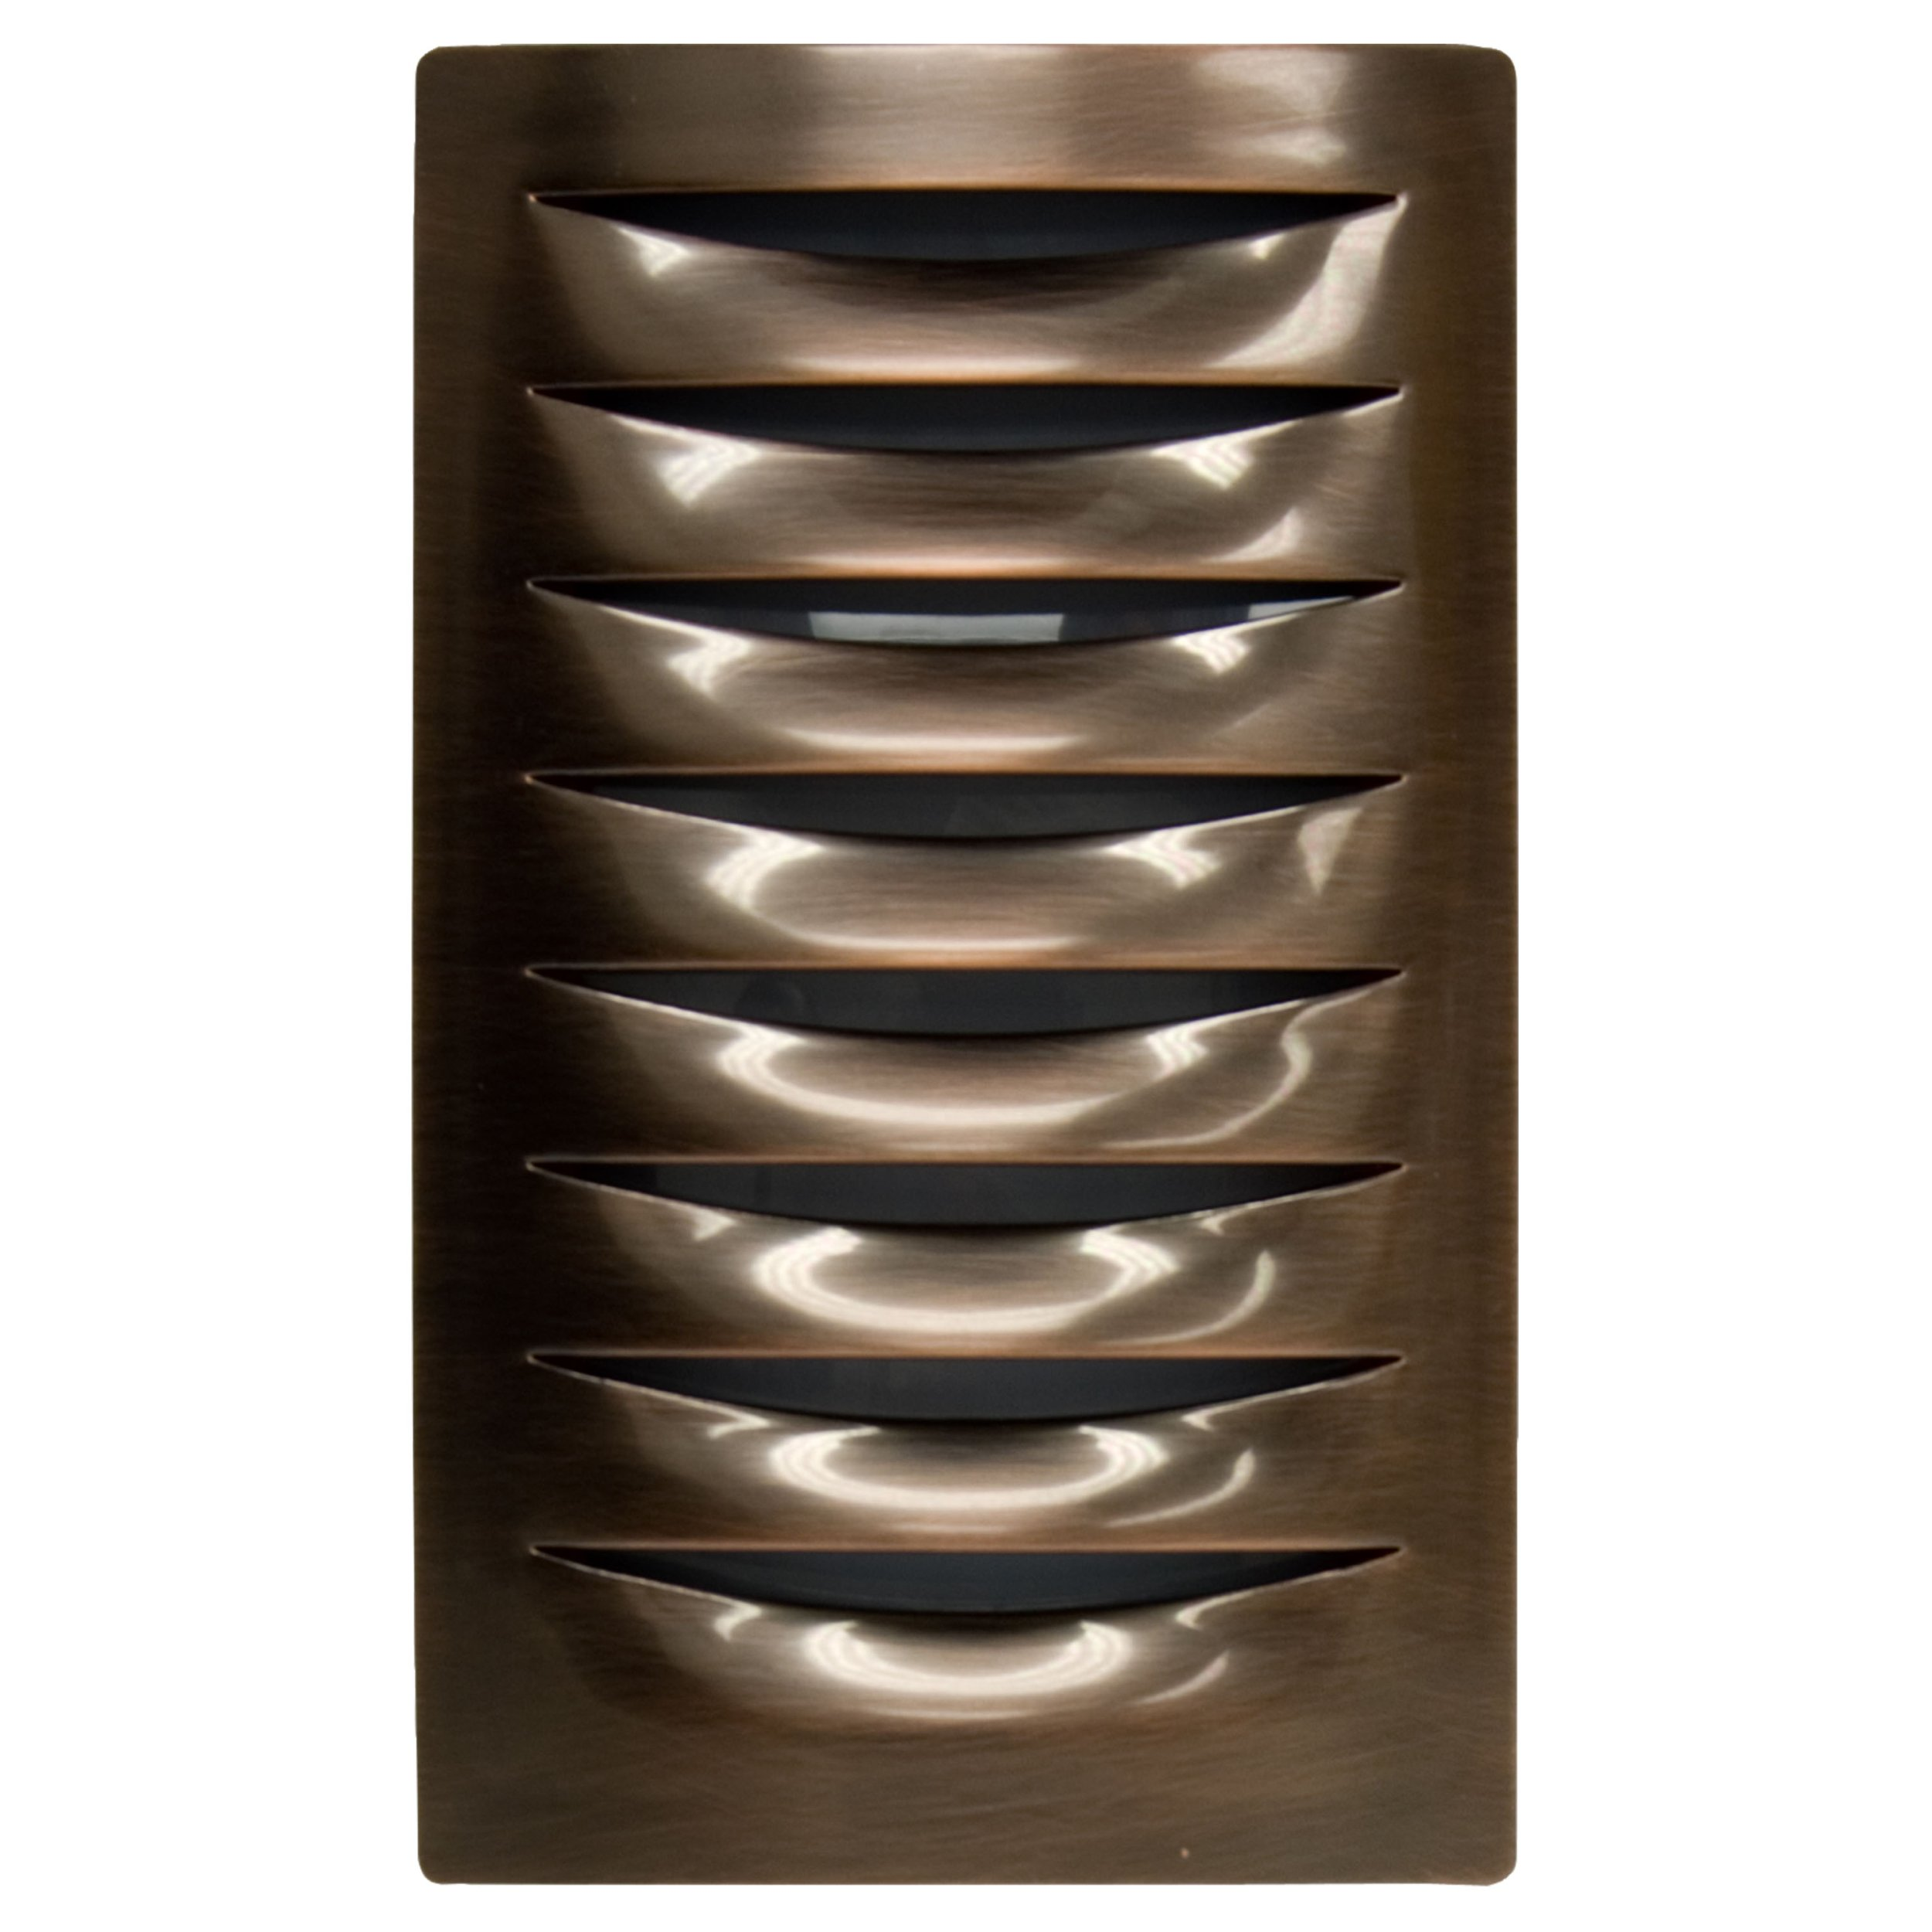 GE 11222 LED CoverLite, Light Sensing, Auto On/Off, Plug-In, Energy Efficient, Soft White, Oil-Rubbed Bronze Finish, Ideal for Entryway, Hallway, Kitchen, Bathroom, Bedroom, Office, and more by GE